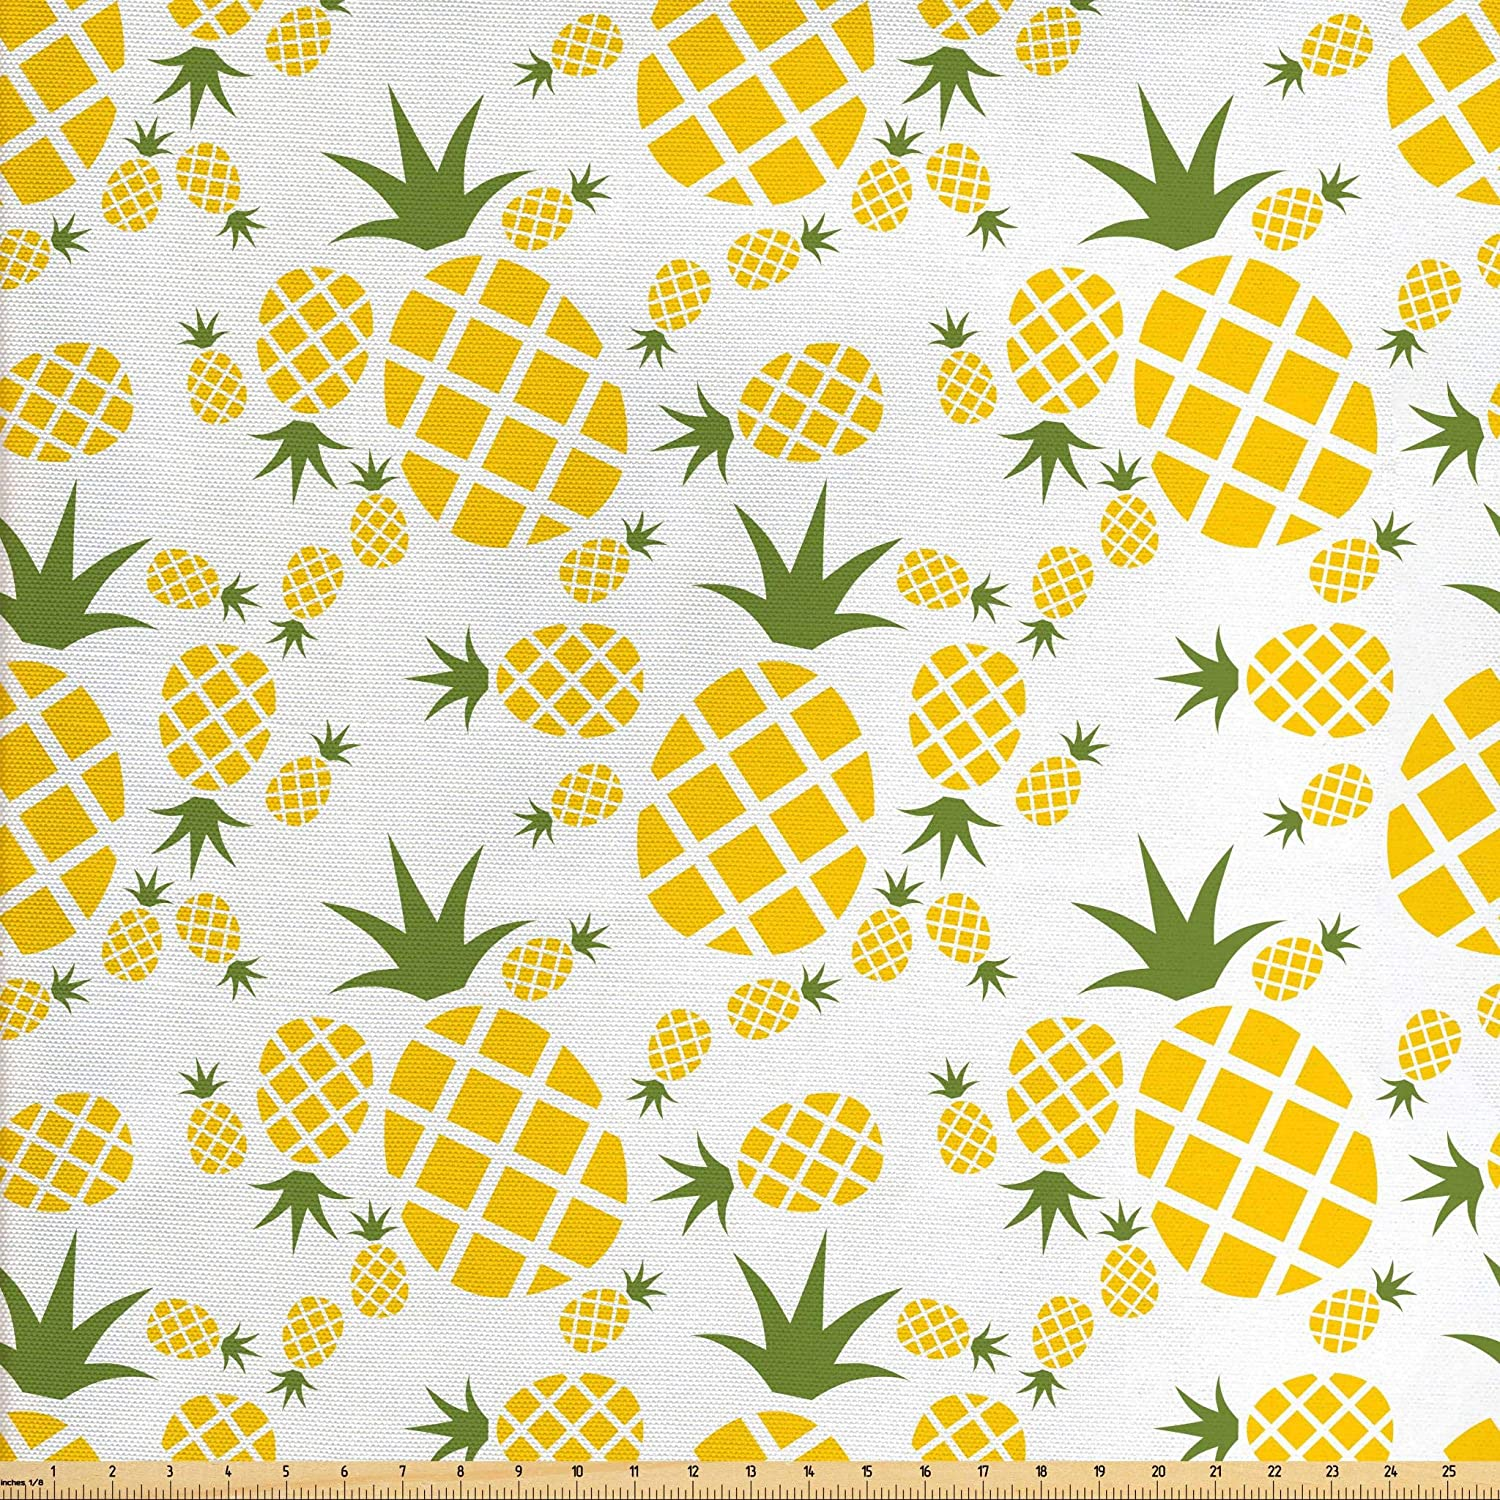 Lunarable Pineapple Fabric by The Yard, Pineapple in Pictogram Design Vintage Style Pattern Farm Vibrant Color, Decorative Fabric for Upholstery and Home Accents, 3 Yards, Green Olive